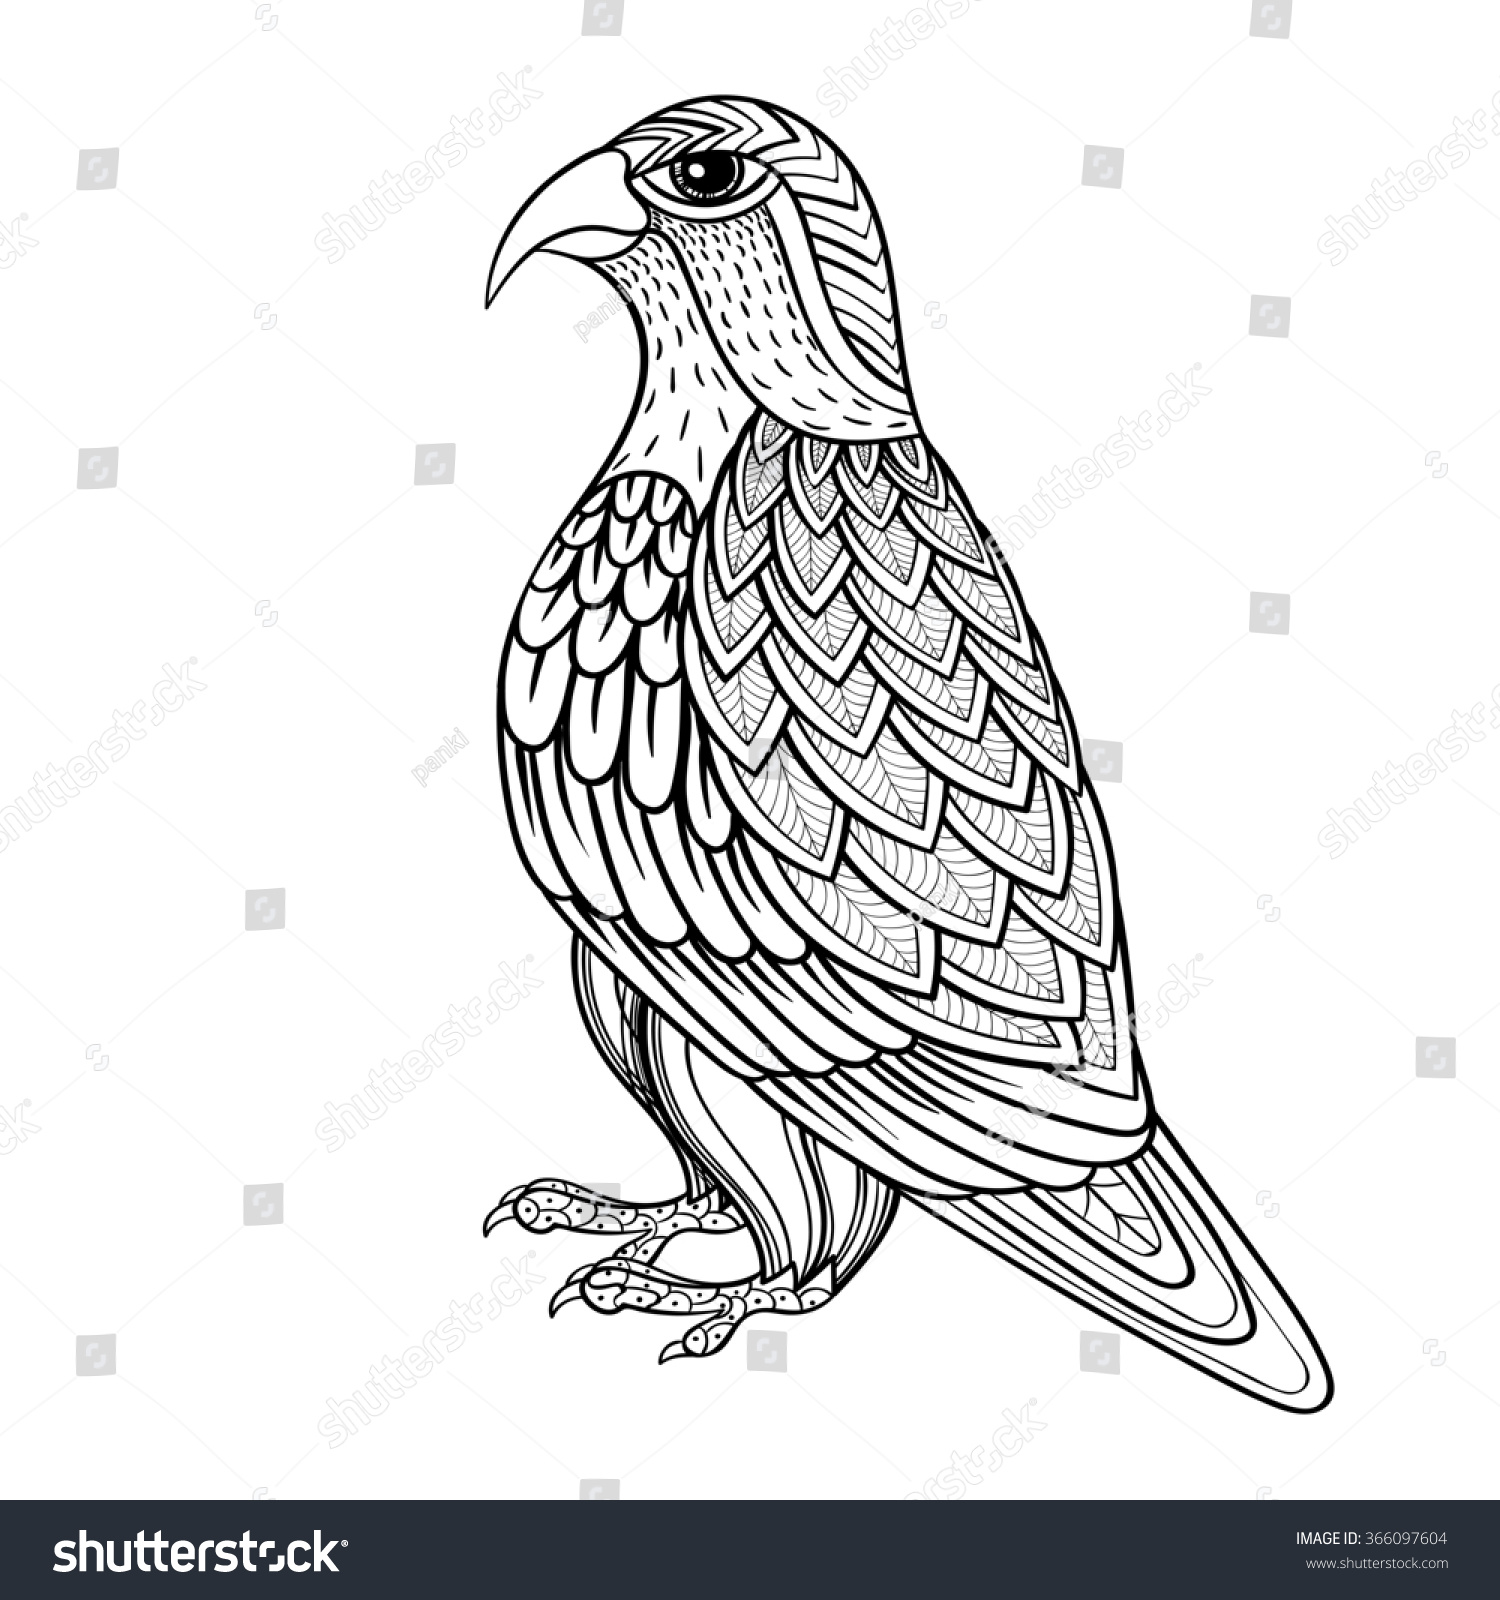 Birds Prey Coloring Pages Adults Coloring Coloring Pages